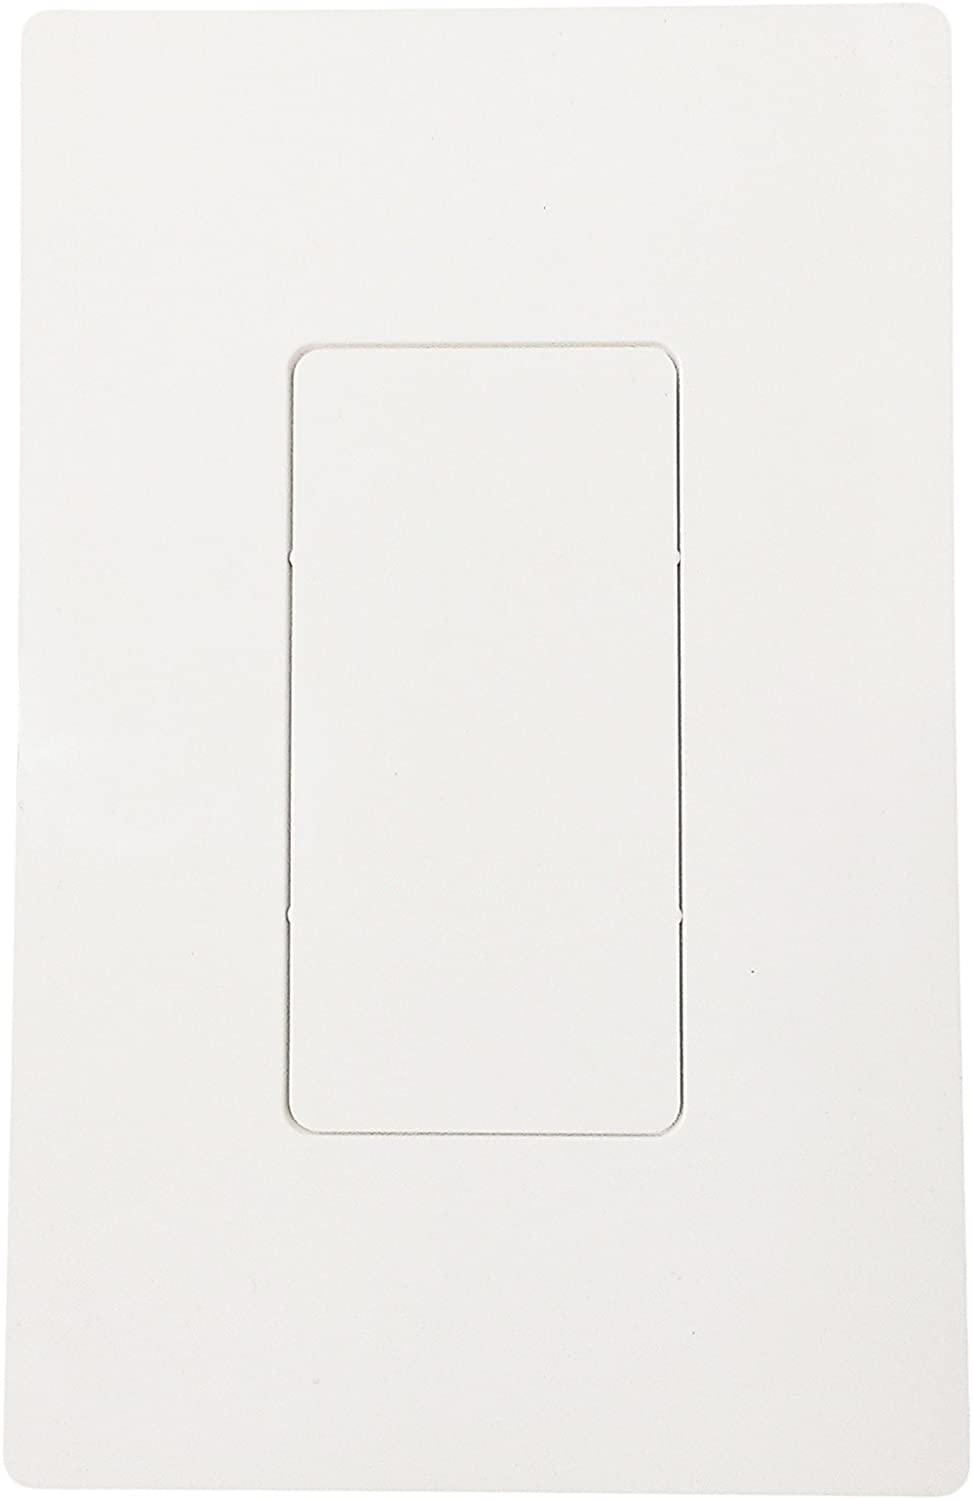 R.J. Enterprises - RJ-2013A-S0 - Screwless Snap-on Wall Plate Blank